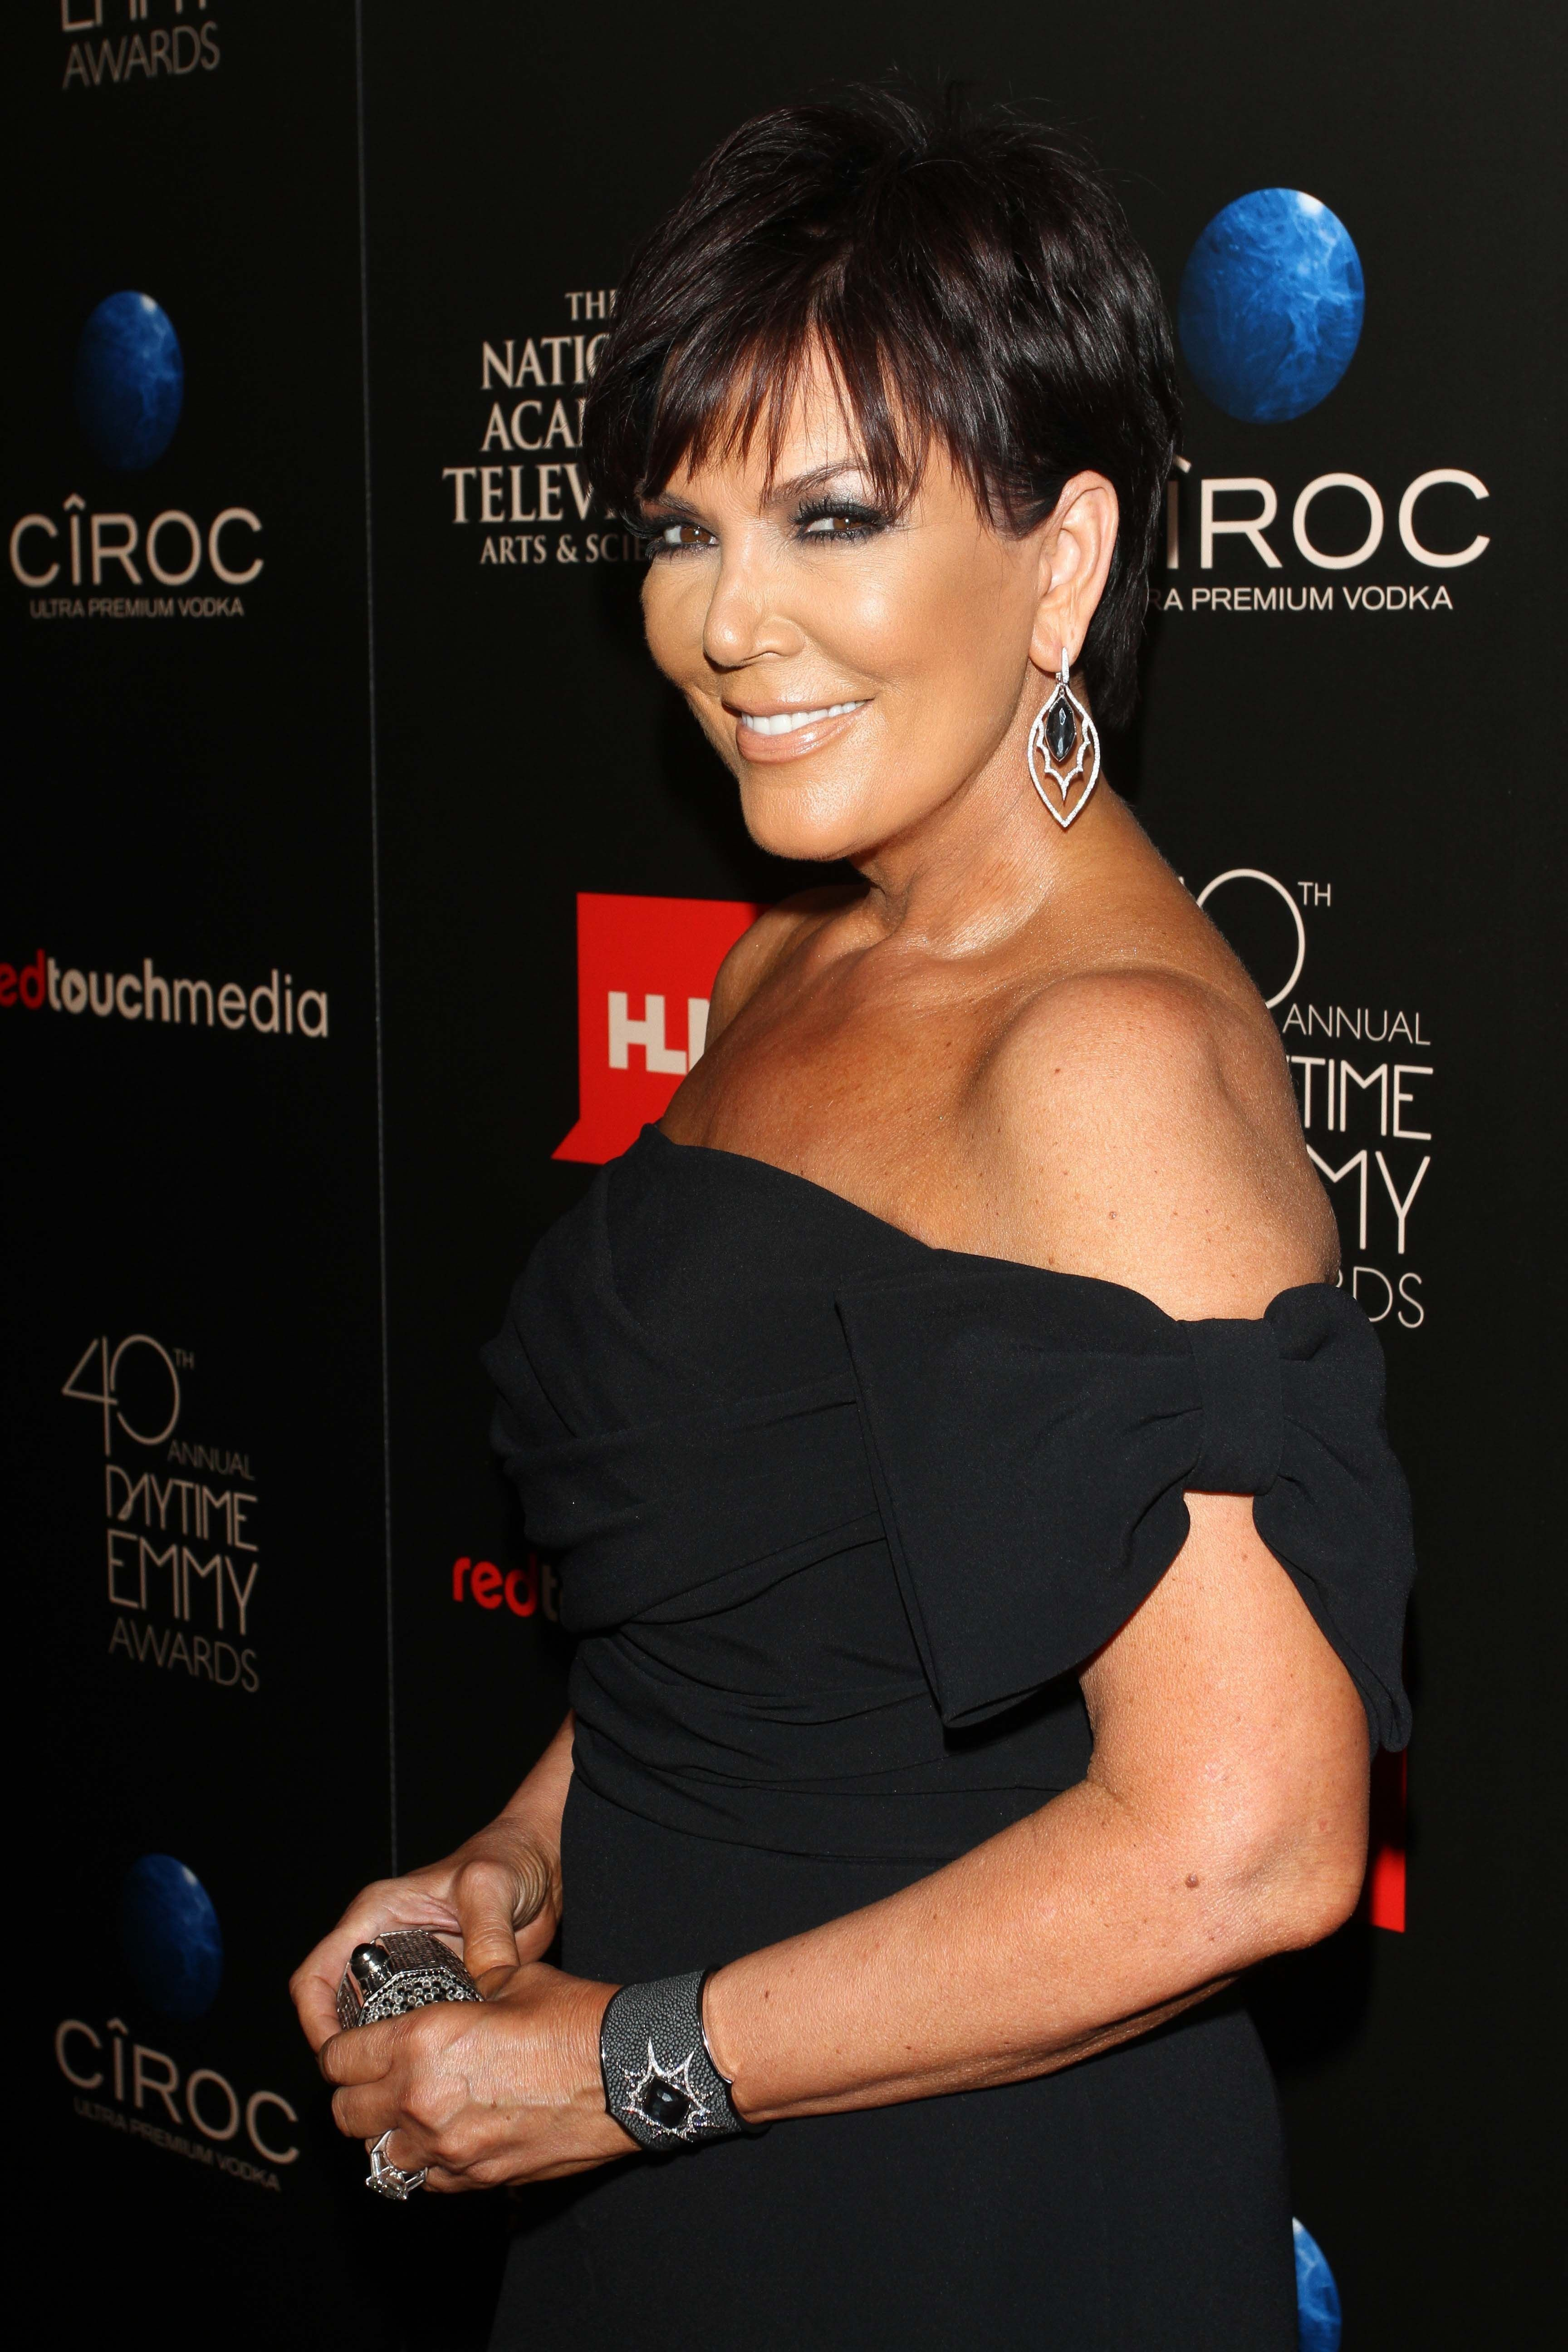 3. Kris and Caitlyn Were Caught Having Sex